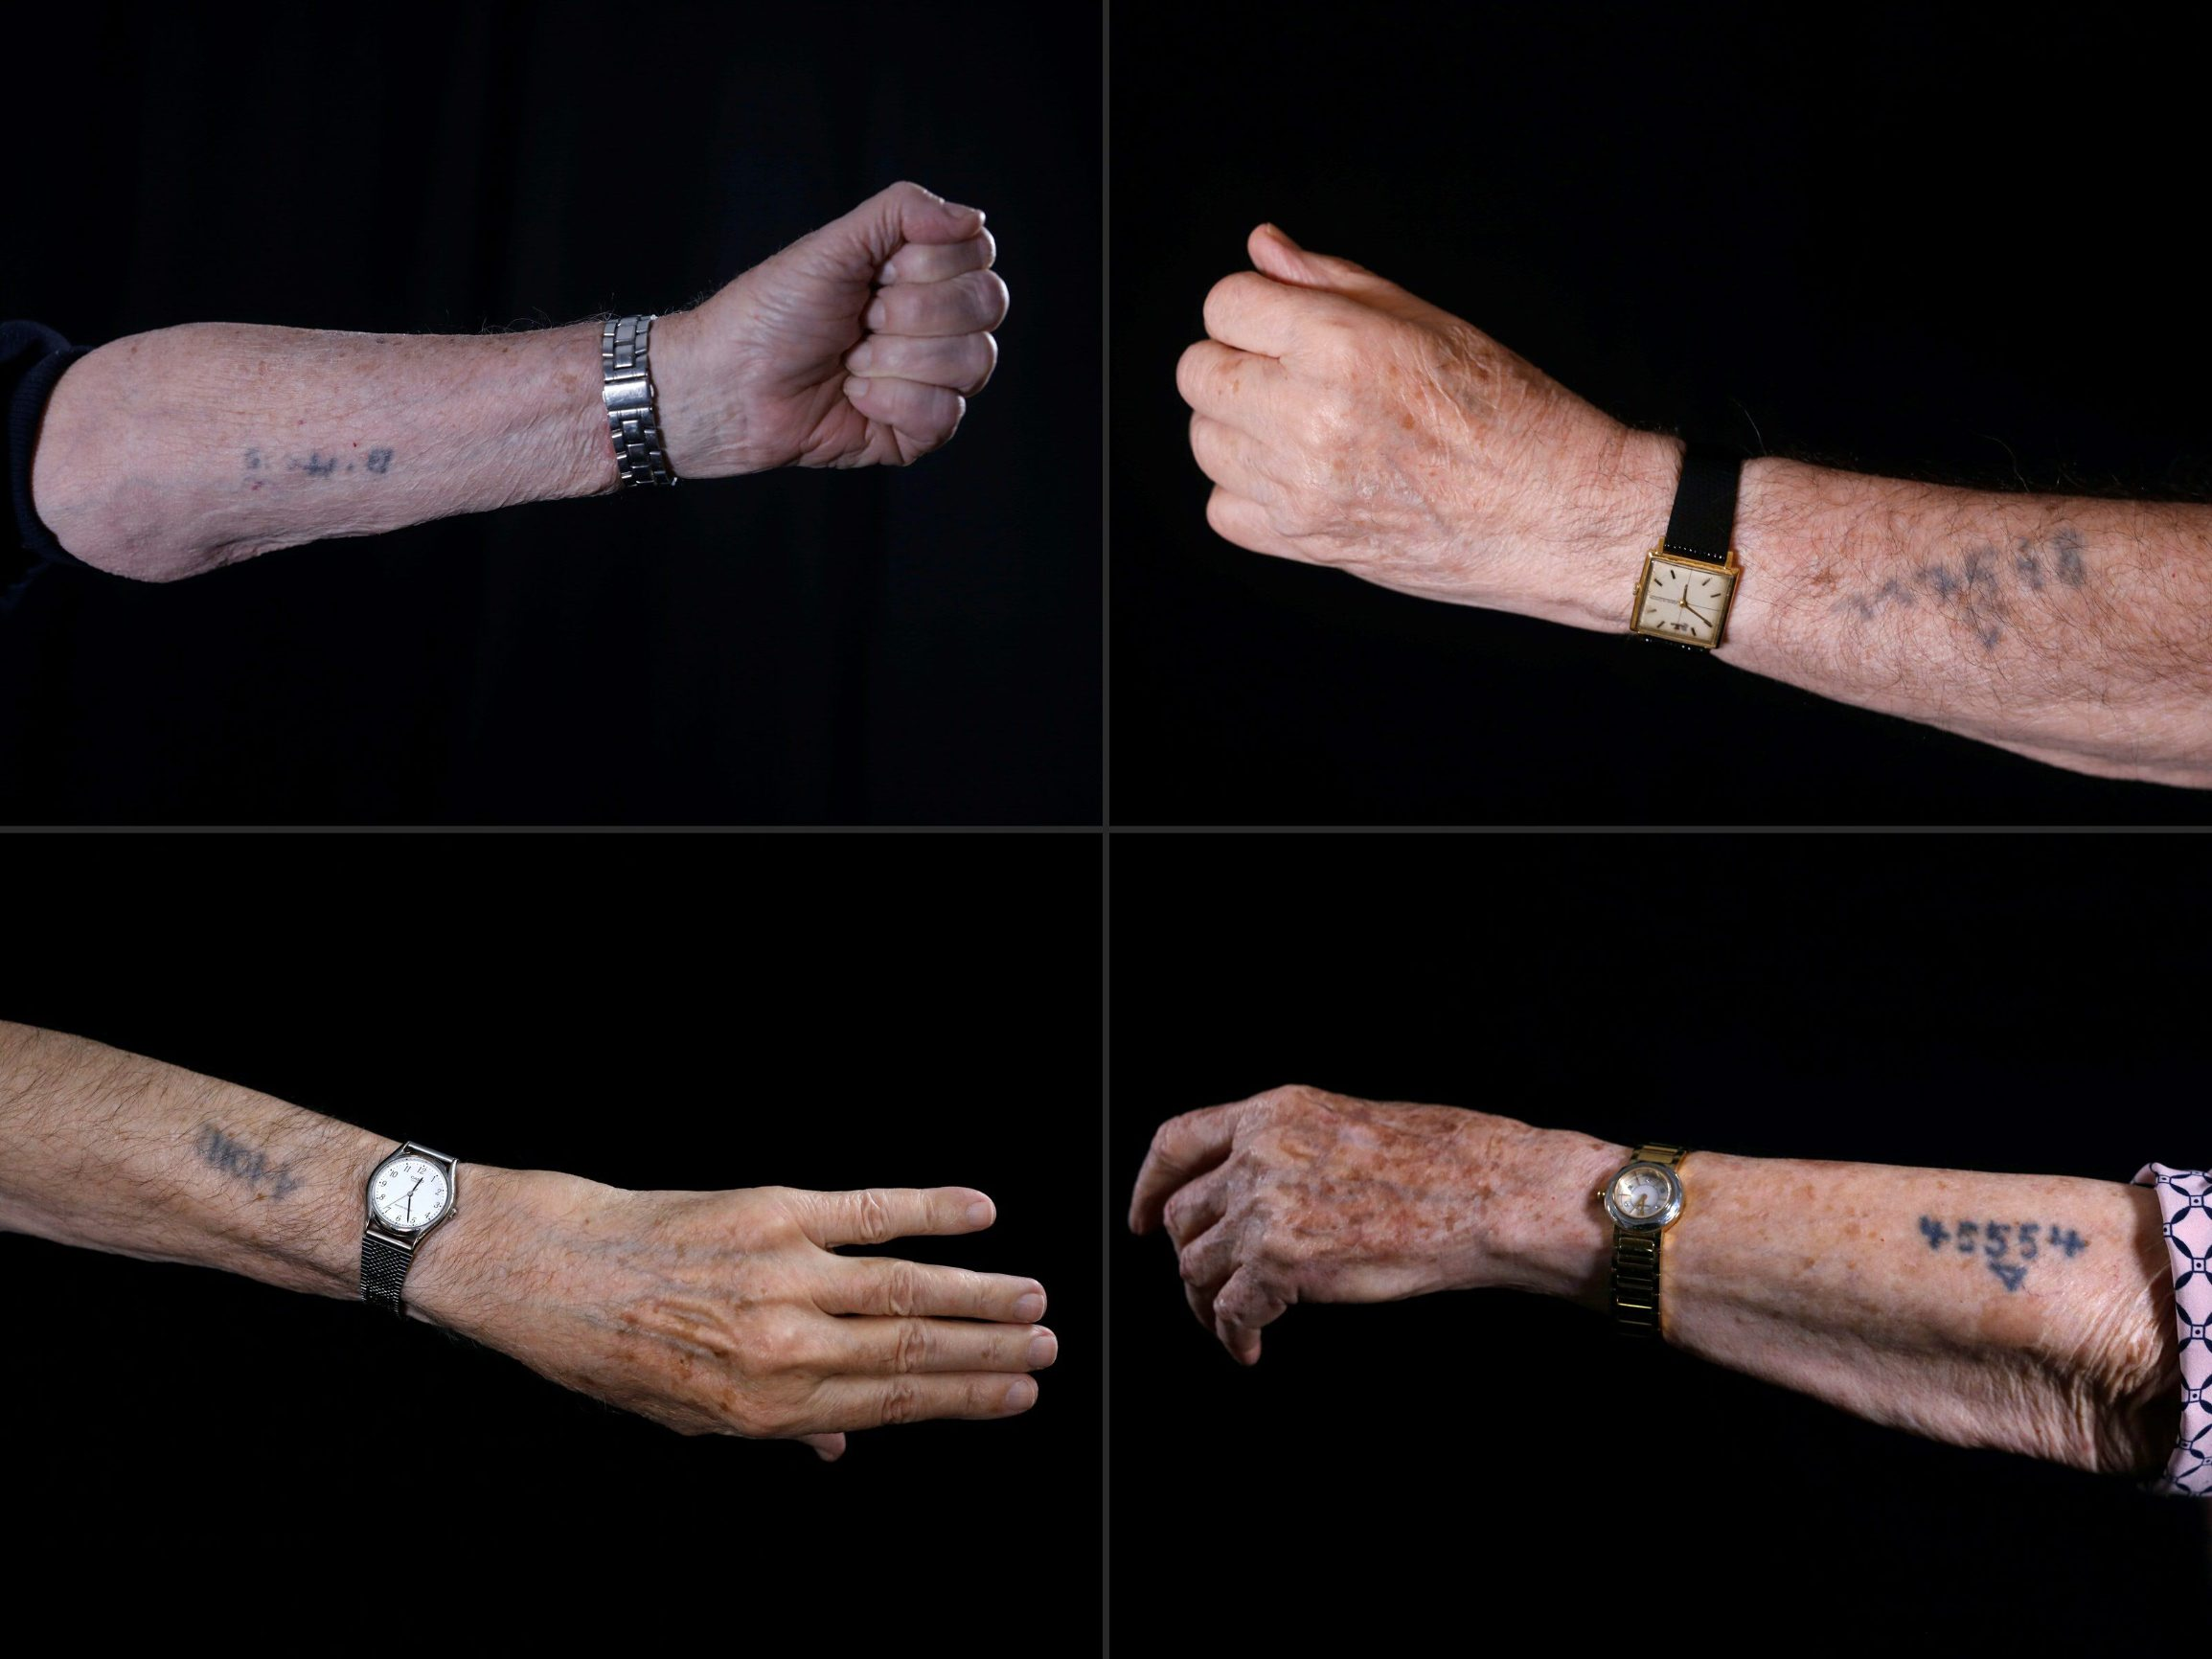 (COMBO) This combination of pictures created on January 11, 2020 shows Holocaust survivor Avraham Gershon Binet (Top-L), 81, shows his arm with the Auschwitz prison number 14005, Holocaust survivor Szmul Icek (top-R) shows his Auschwitz prison number 117568 on his arm, Holocaust survivor Menahem Haberman (bottom-L), 92, shows his arm with the Auschwitz prison number A10011, and Holocaust survivor Batcheva Dagan (bottom-R), whose entire family was killed, shows her arm with the Auschwitz prison number 45554, during a photo session. - Ahead of events marking the 75th anniversary of the liberation of Auschwitz, AFP has been speaking to the last survivors of the death camp. Originally from Europe, they spent part of their childhood in the notorious extermination camp before moving after World War II to Israel. (Photos by MENAHEM KAHANA / AFP)